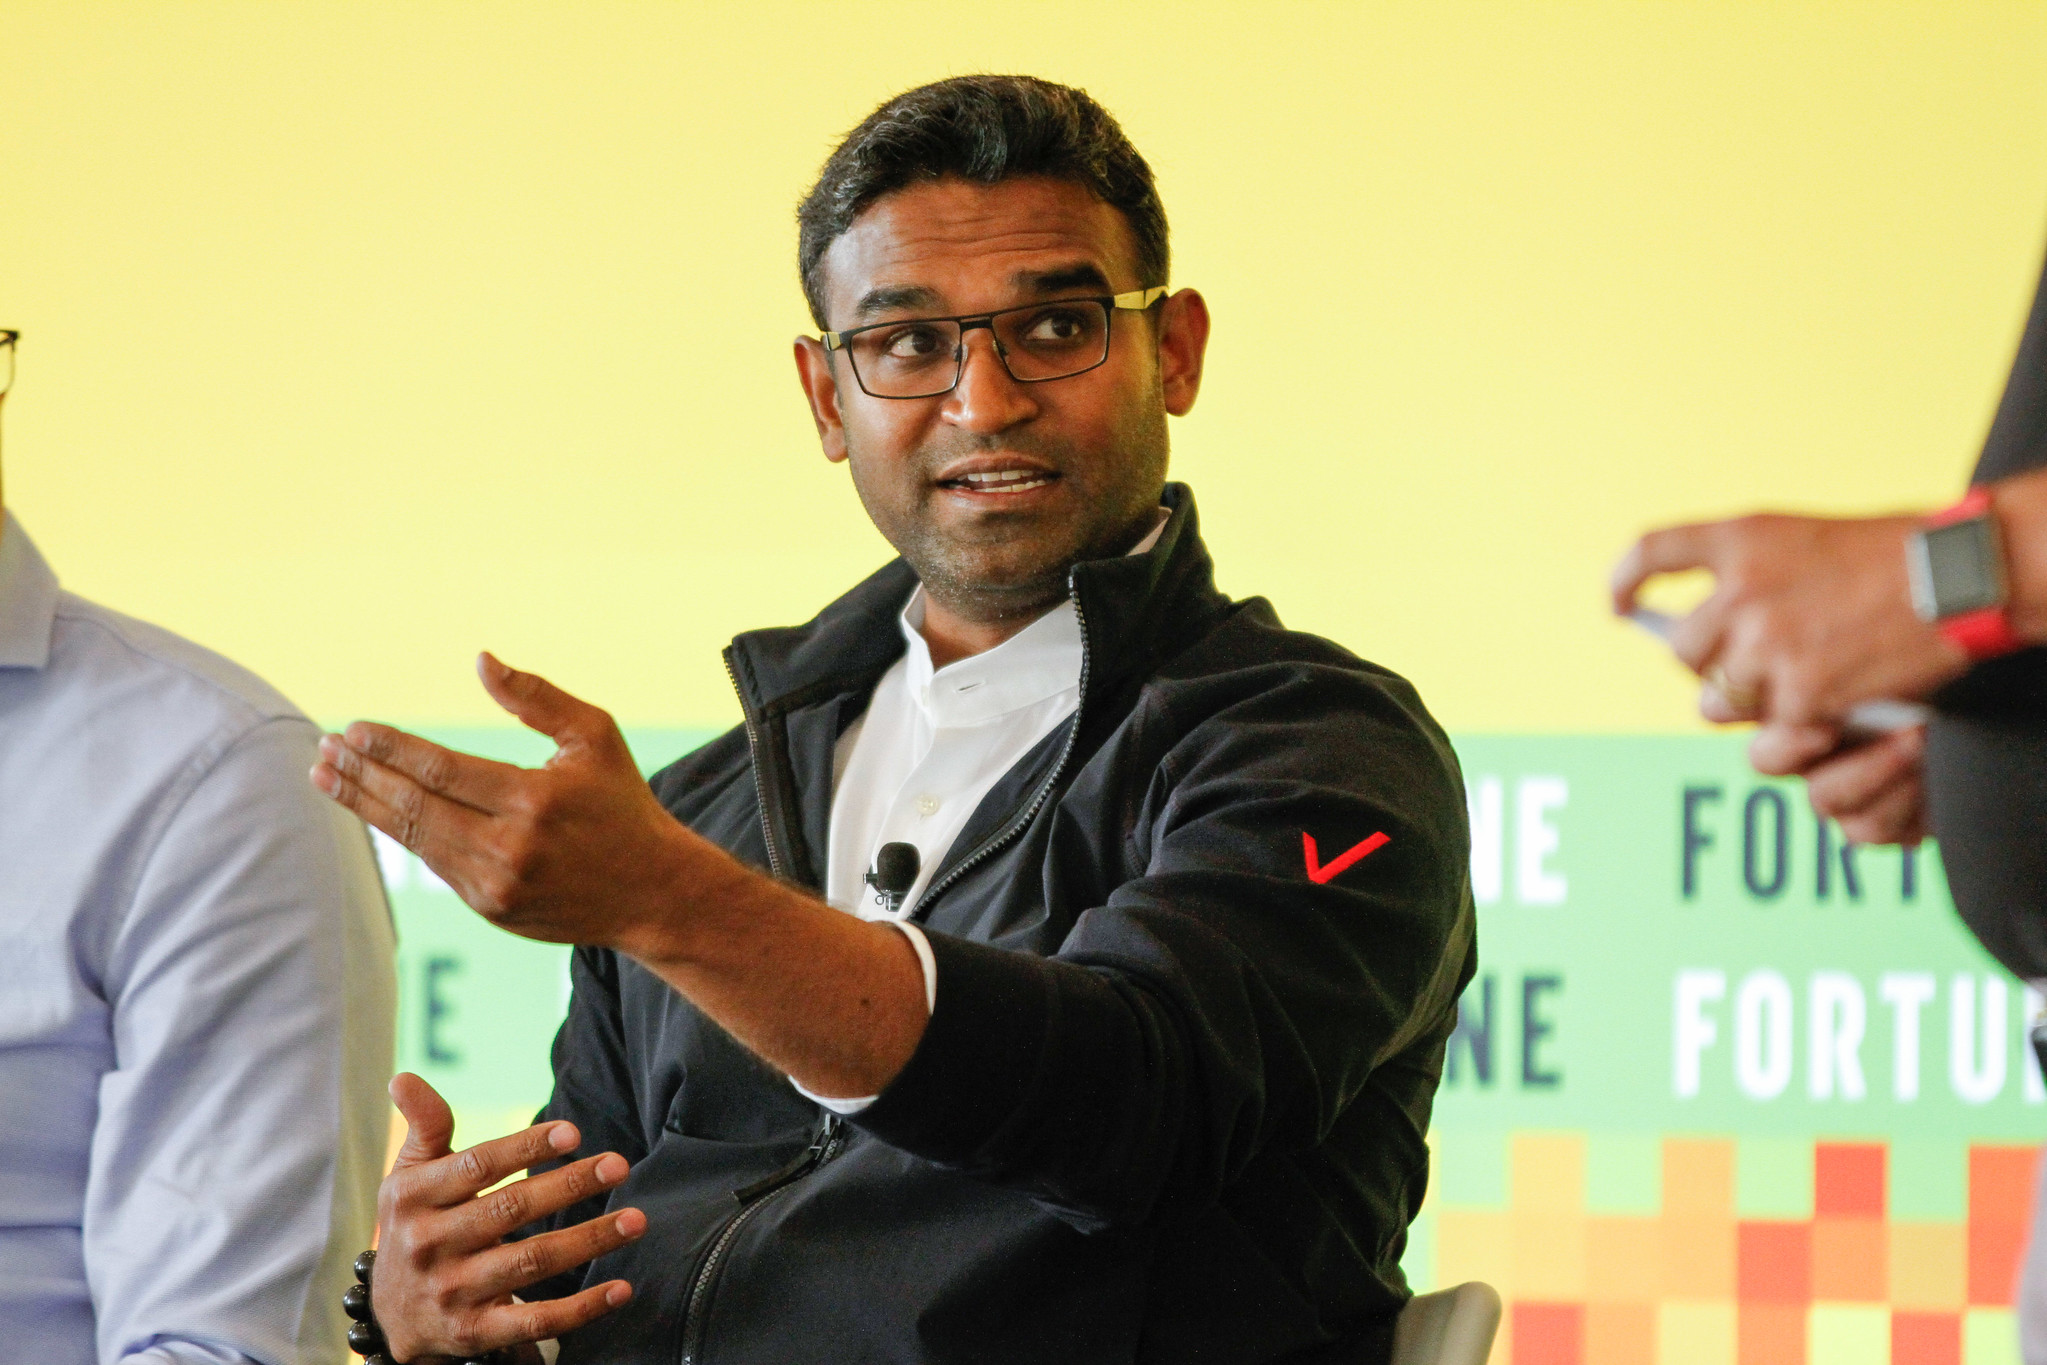 Guru Gowrappan, group CEO of Verizon Media, at Fortune's Brainstorm Tech conference in Aspen, Colo.